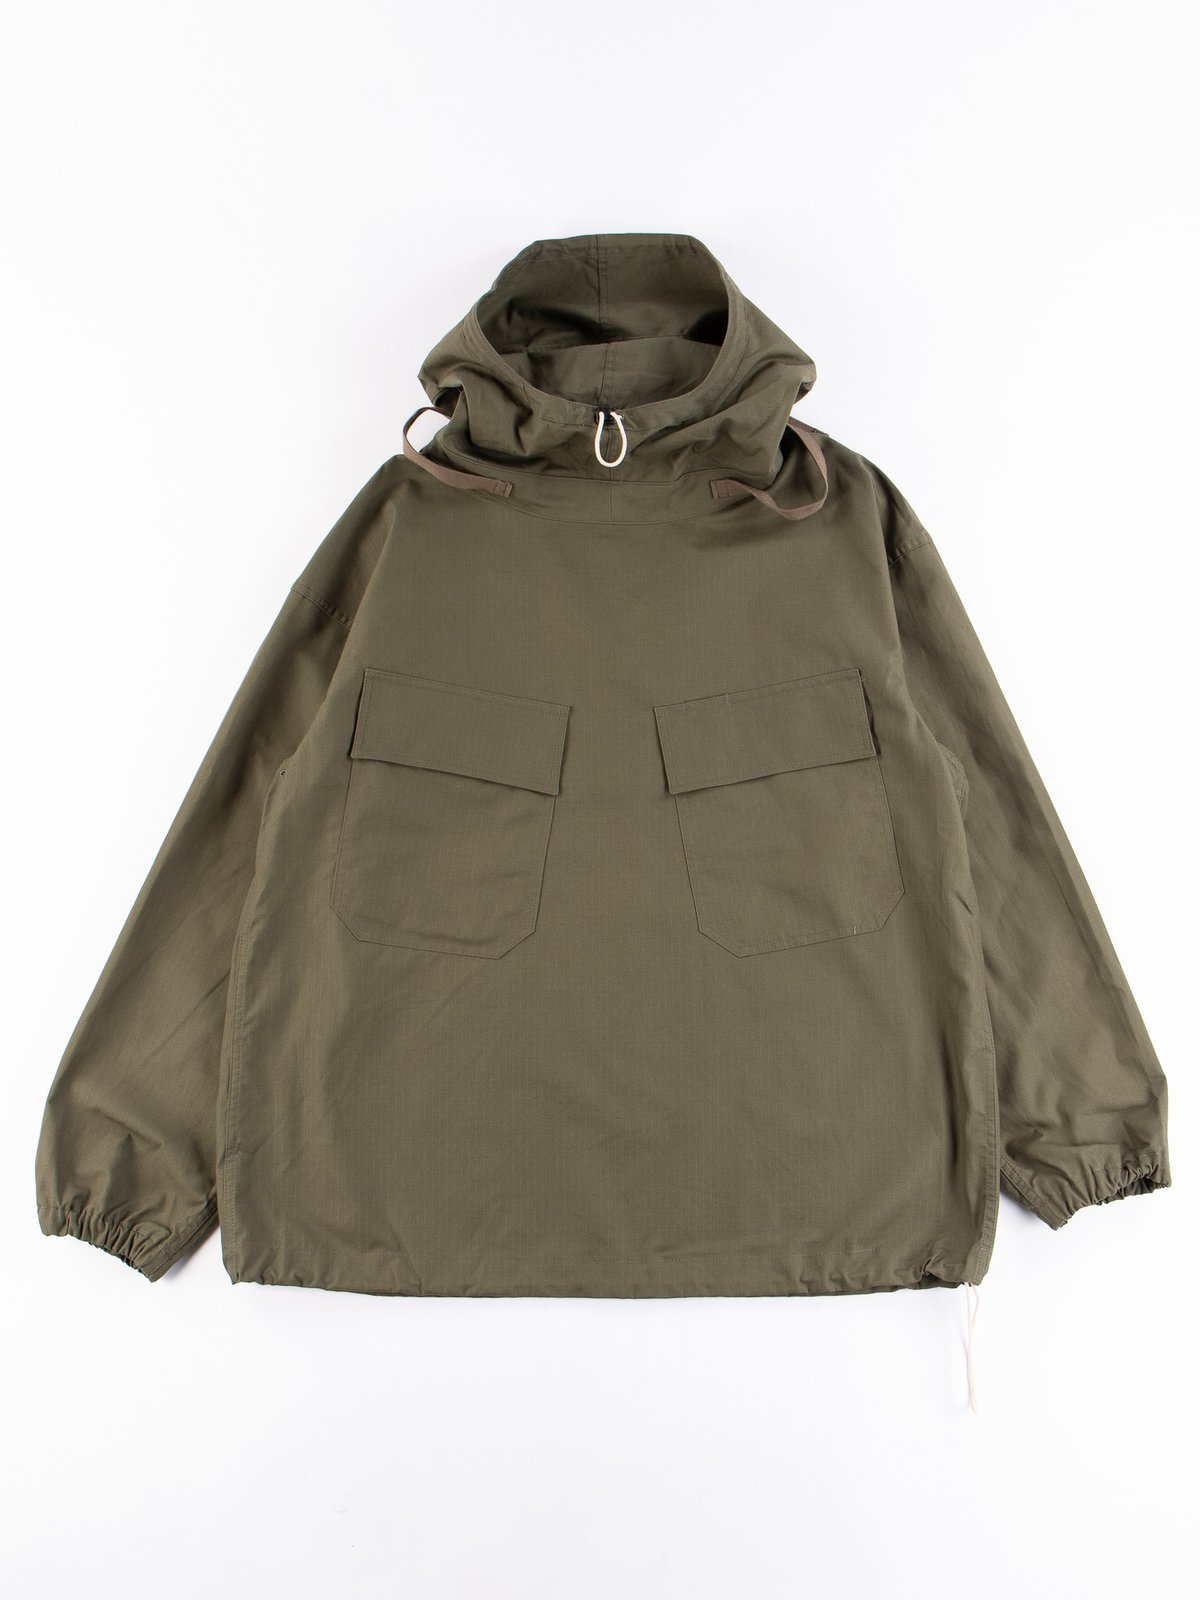 Olive Army Ripstop Salvage Parka - Image 1